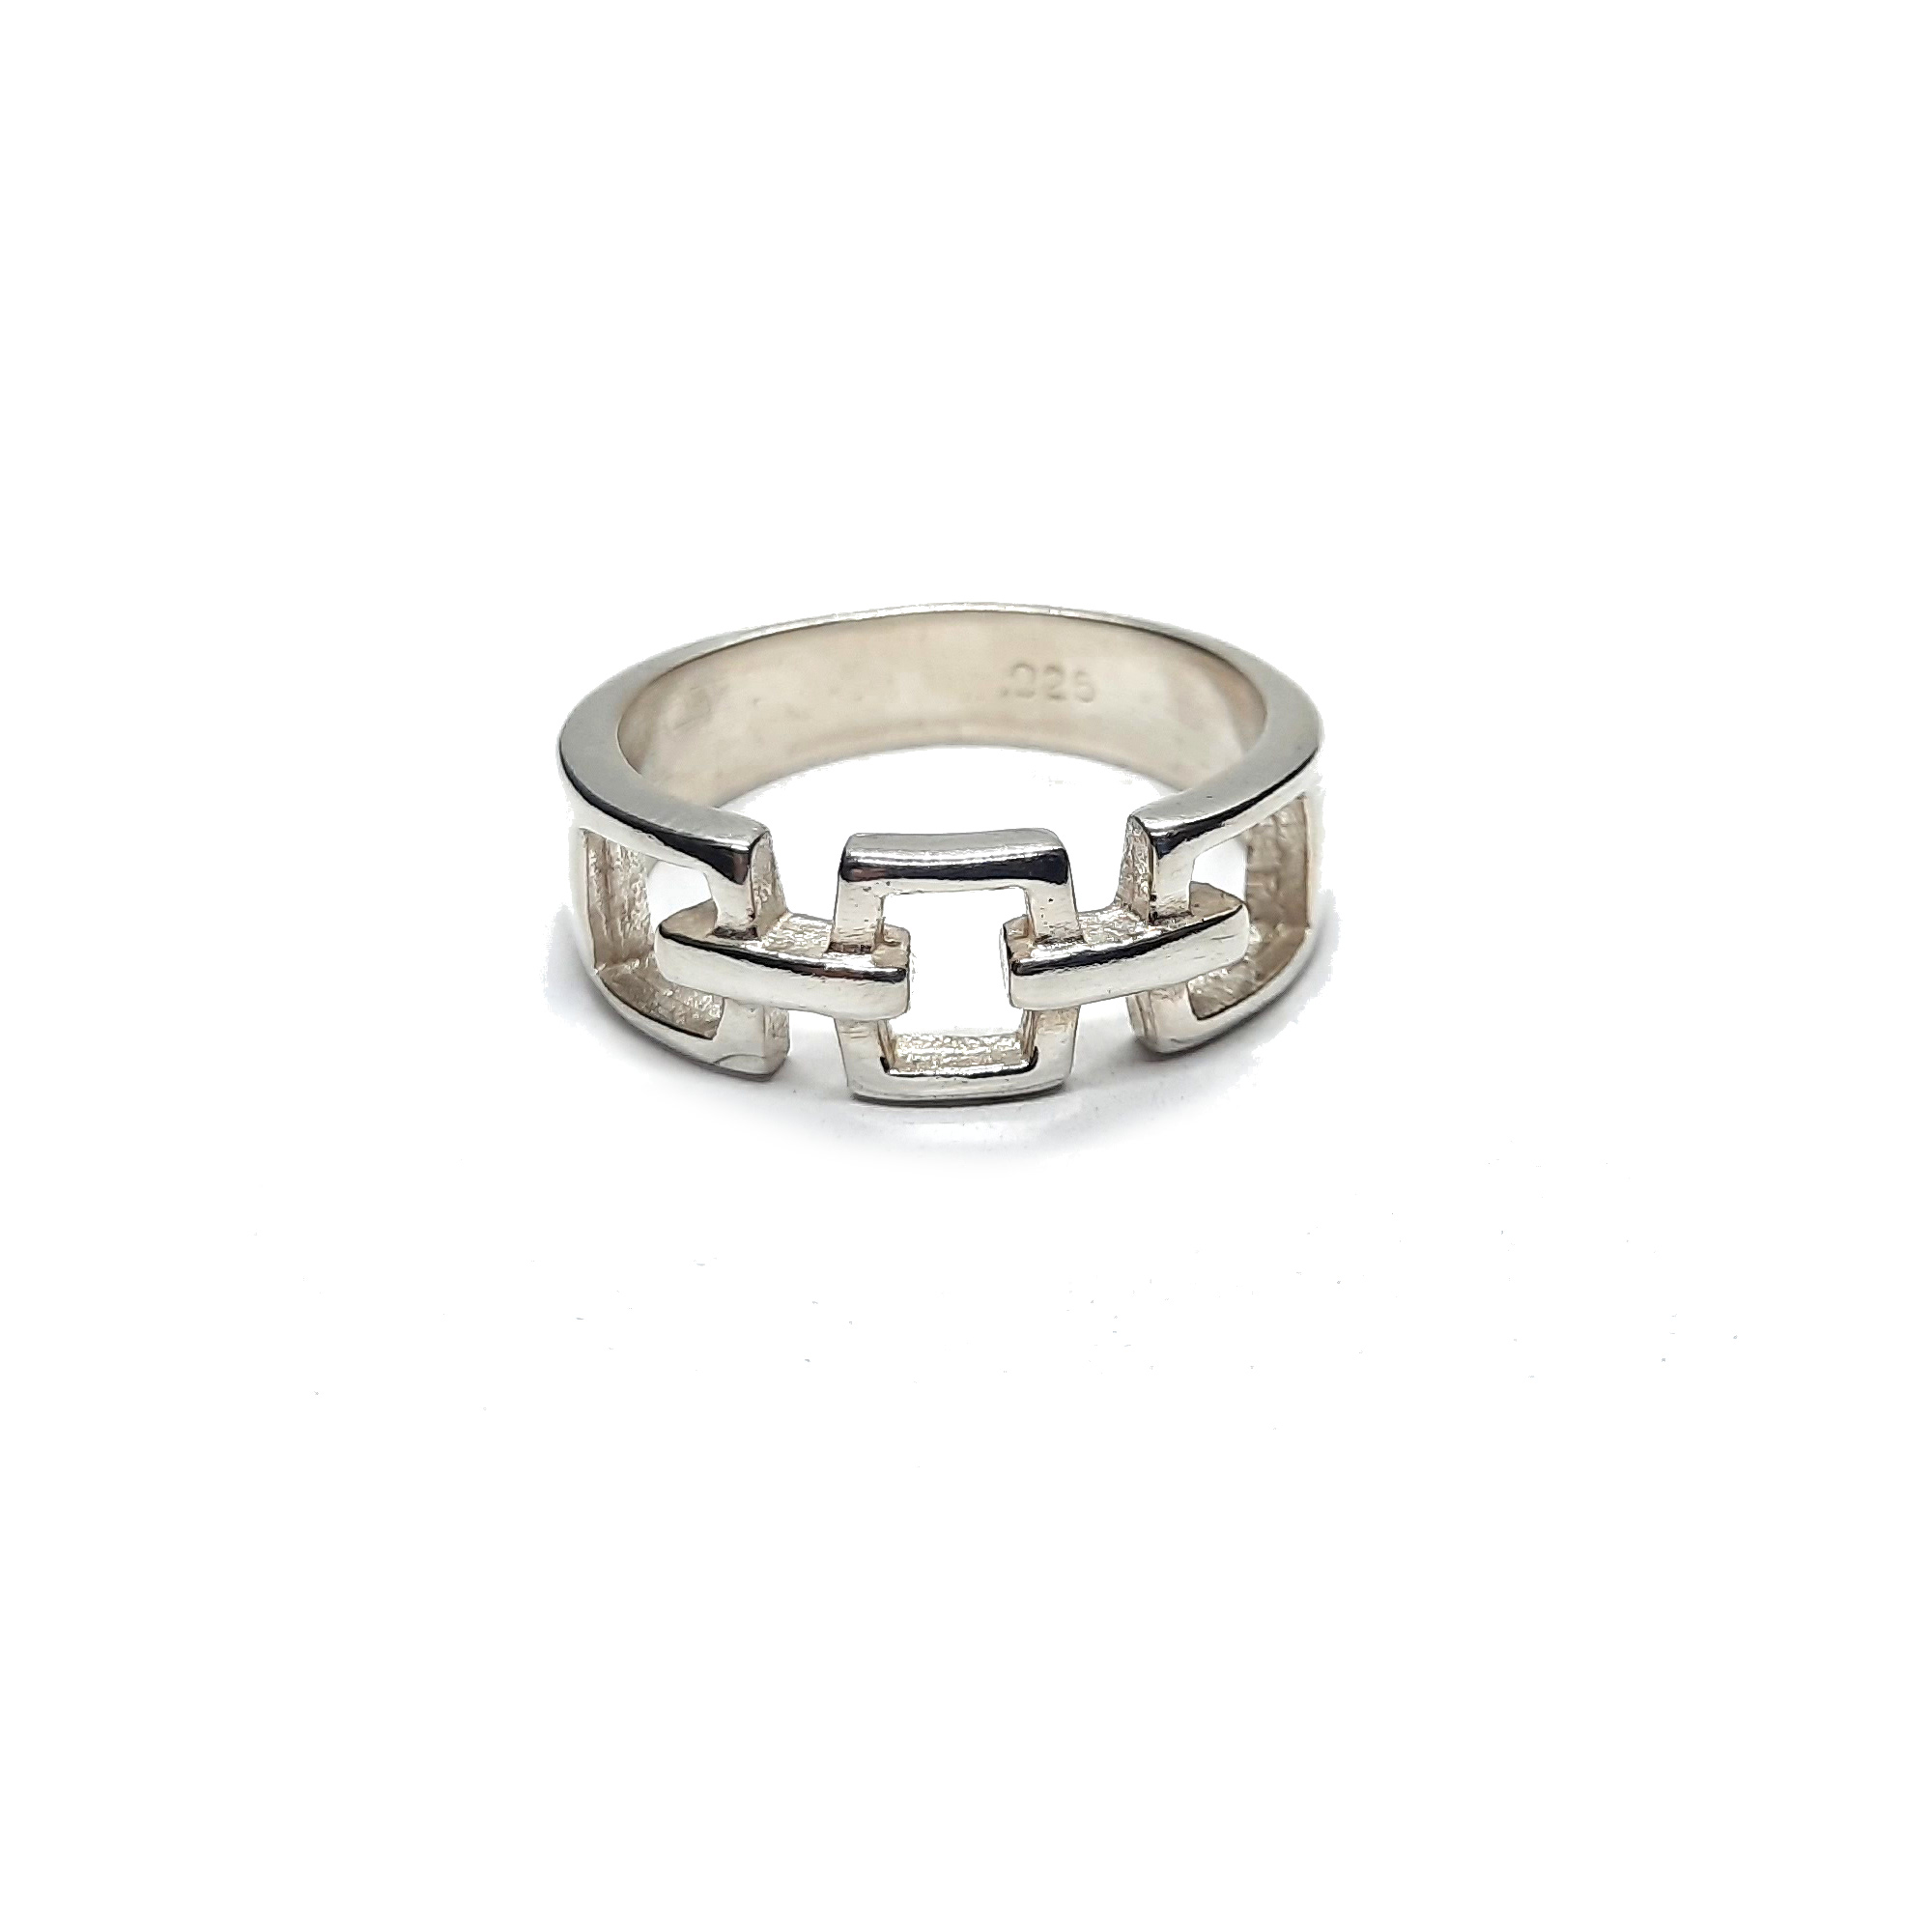 Silver ring - R002209